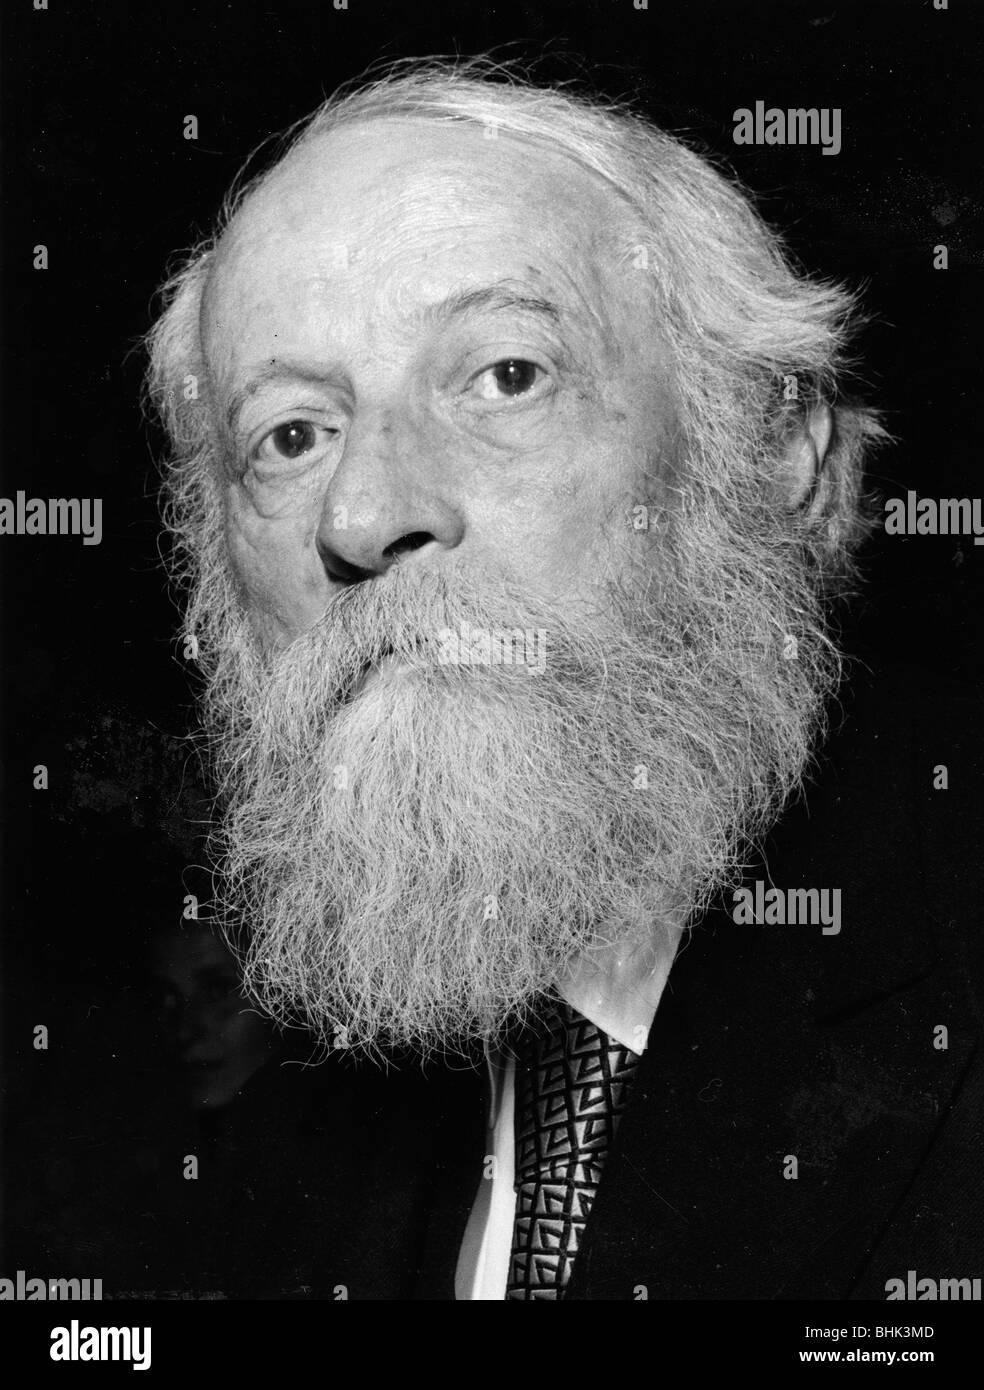 Martin Buber, philosopher and existentialist. - Stock Image